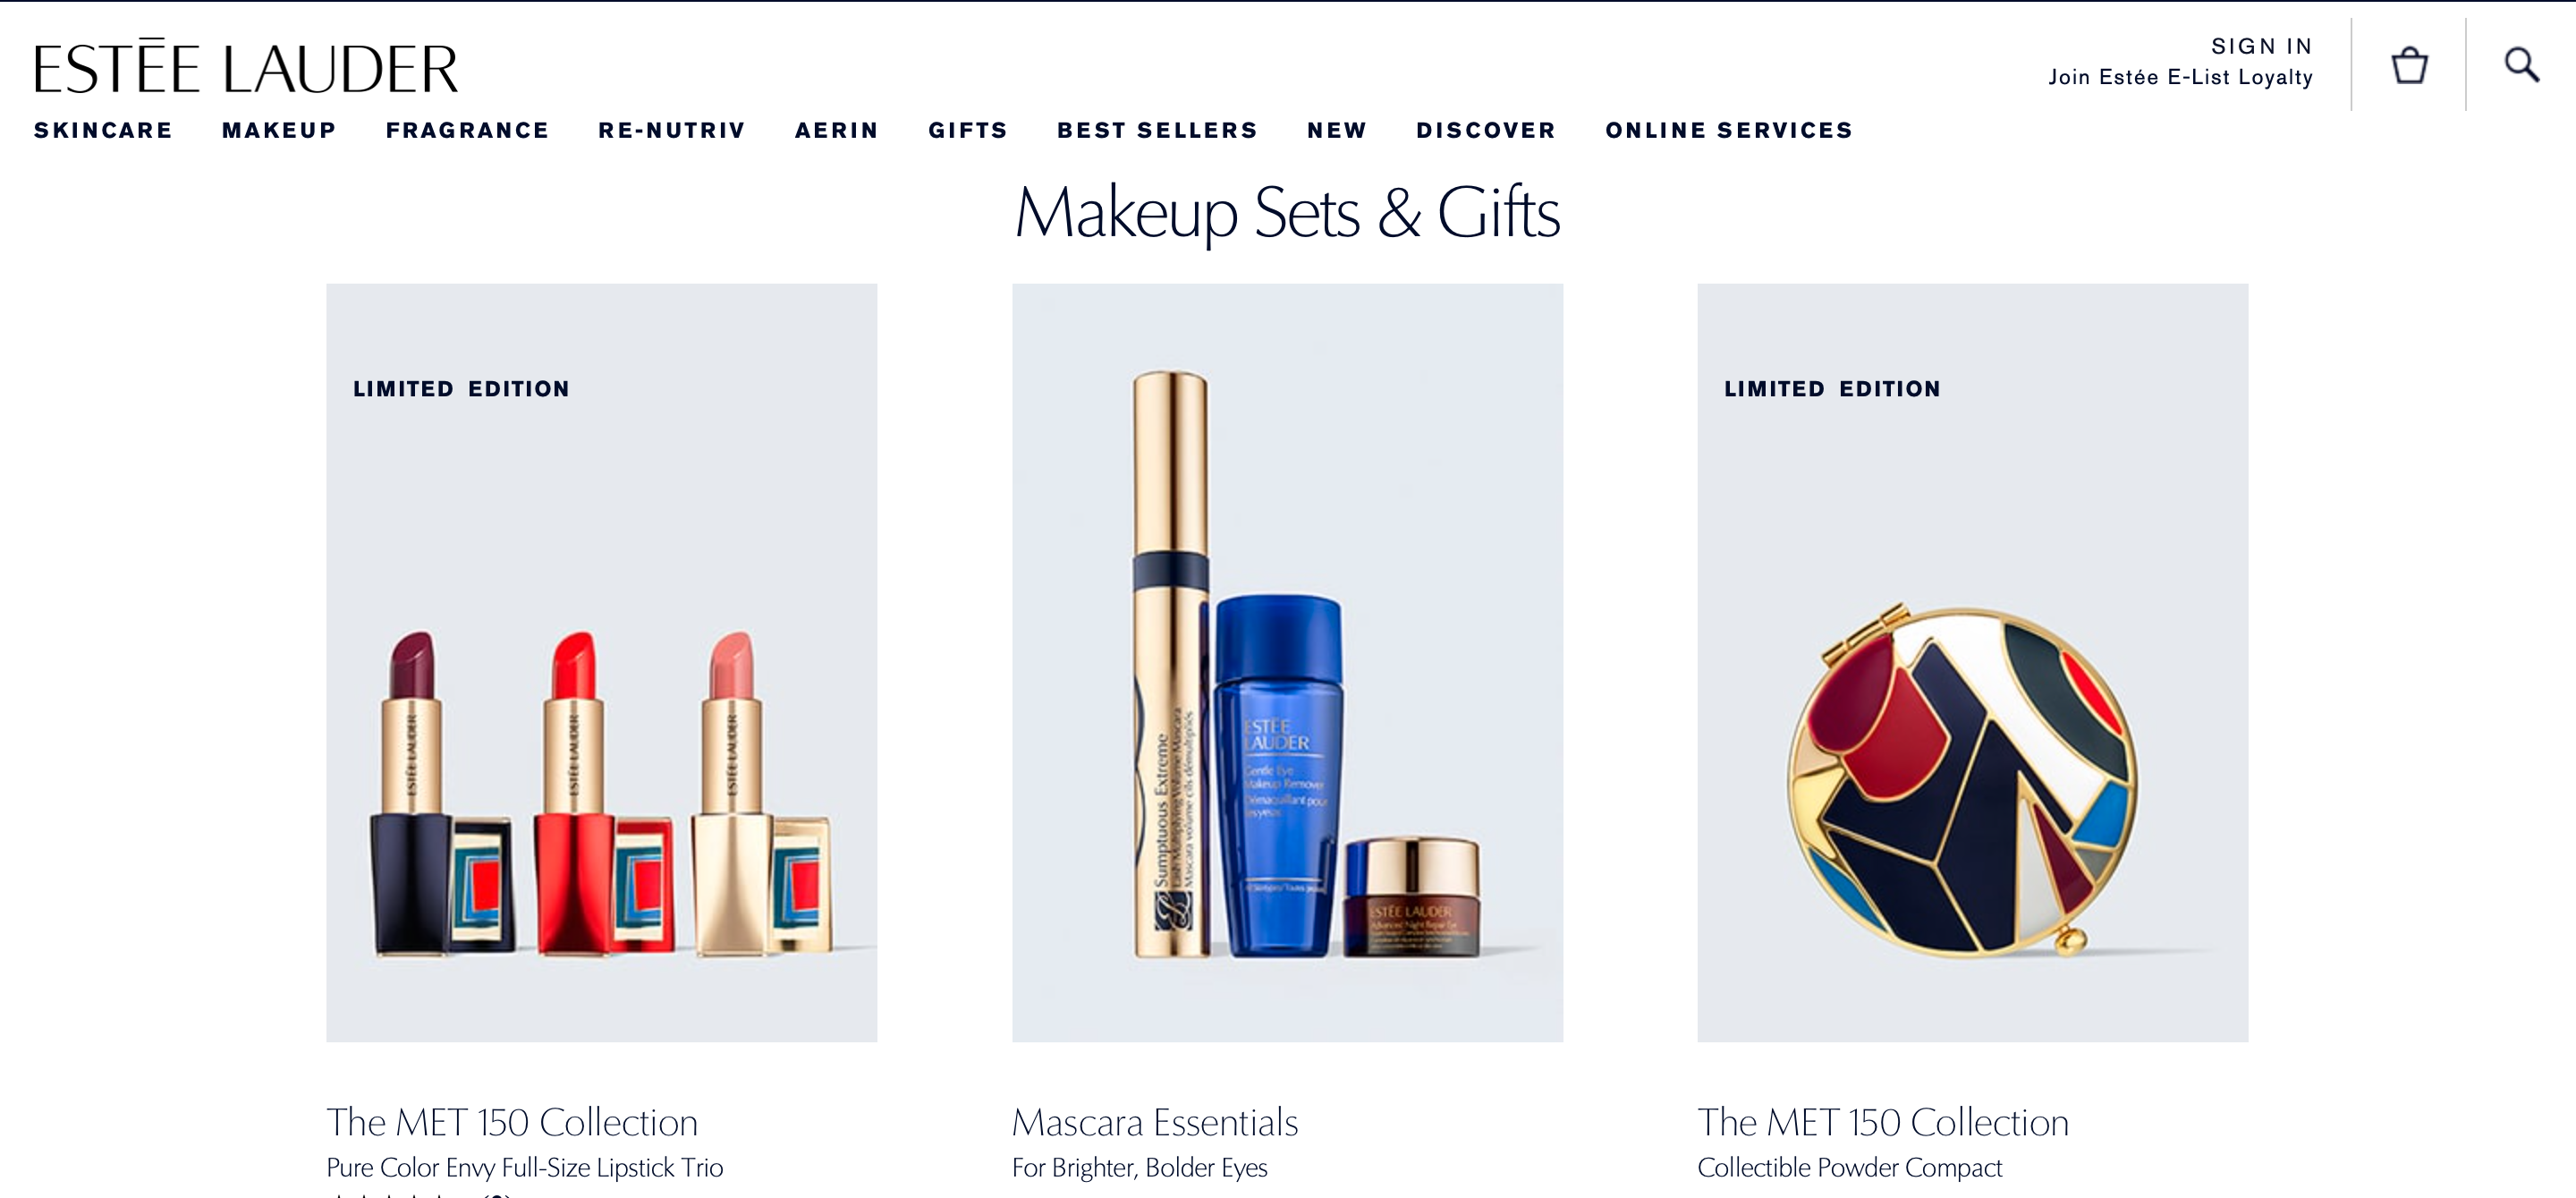 Estee Lauder bundles its products to entice customers